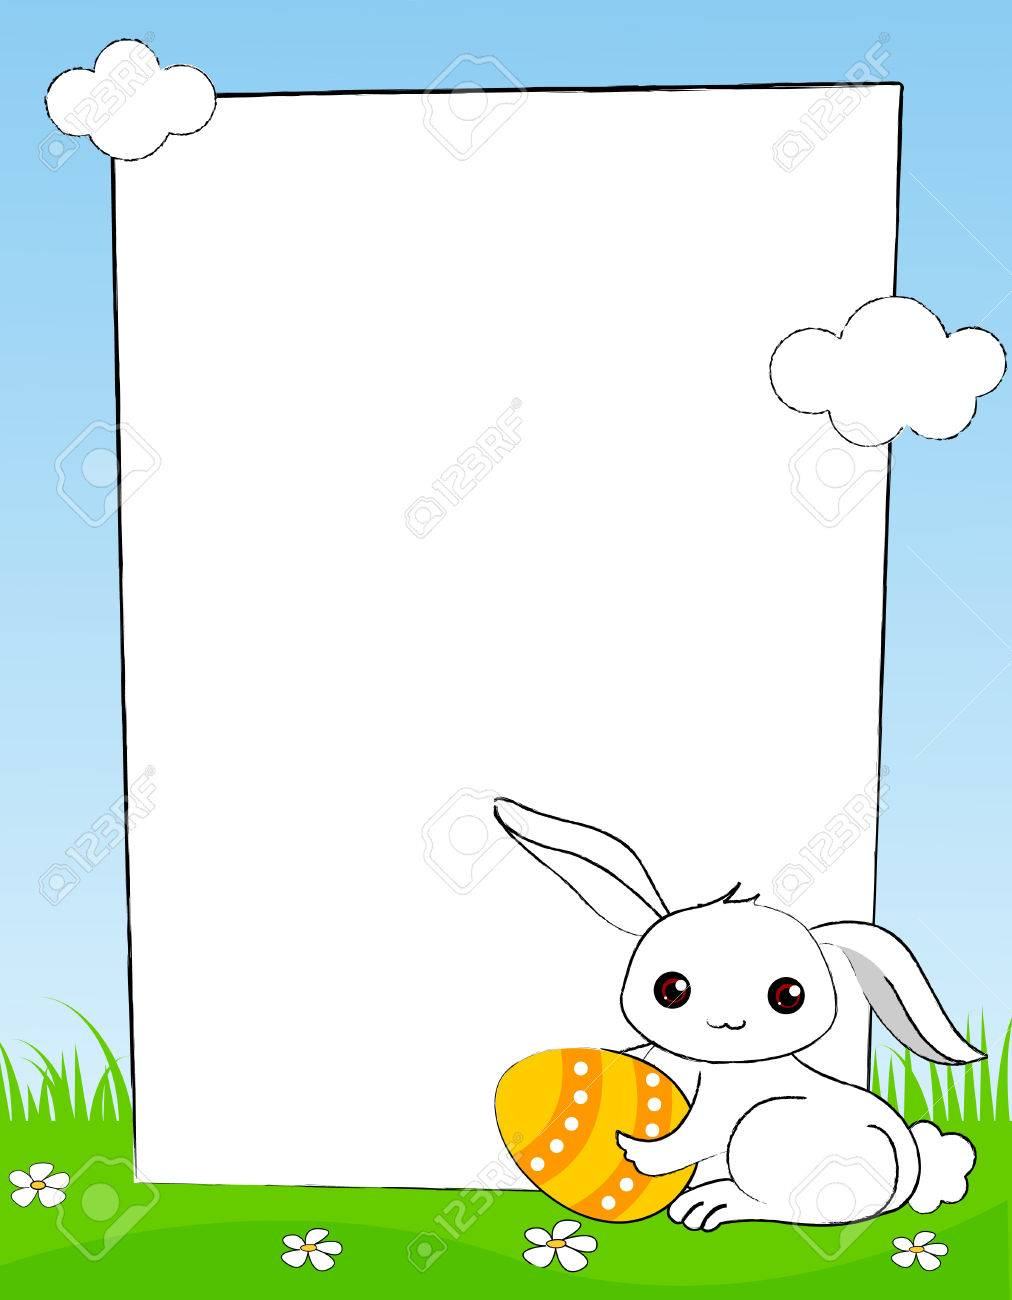 Cute white easter bunny with colorful easter egg frame / border.